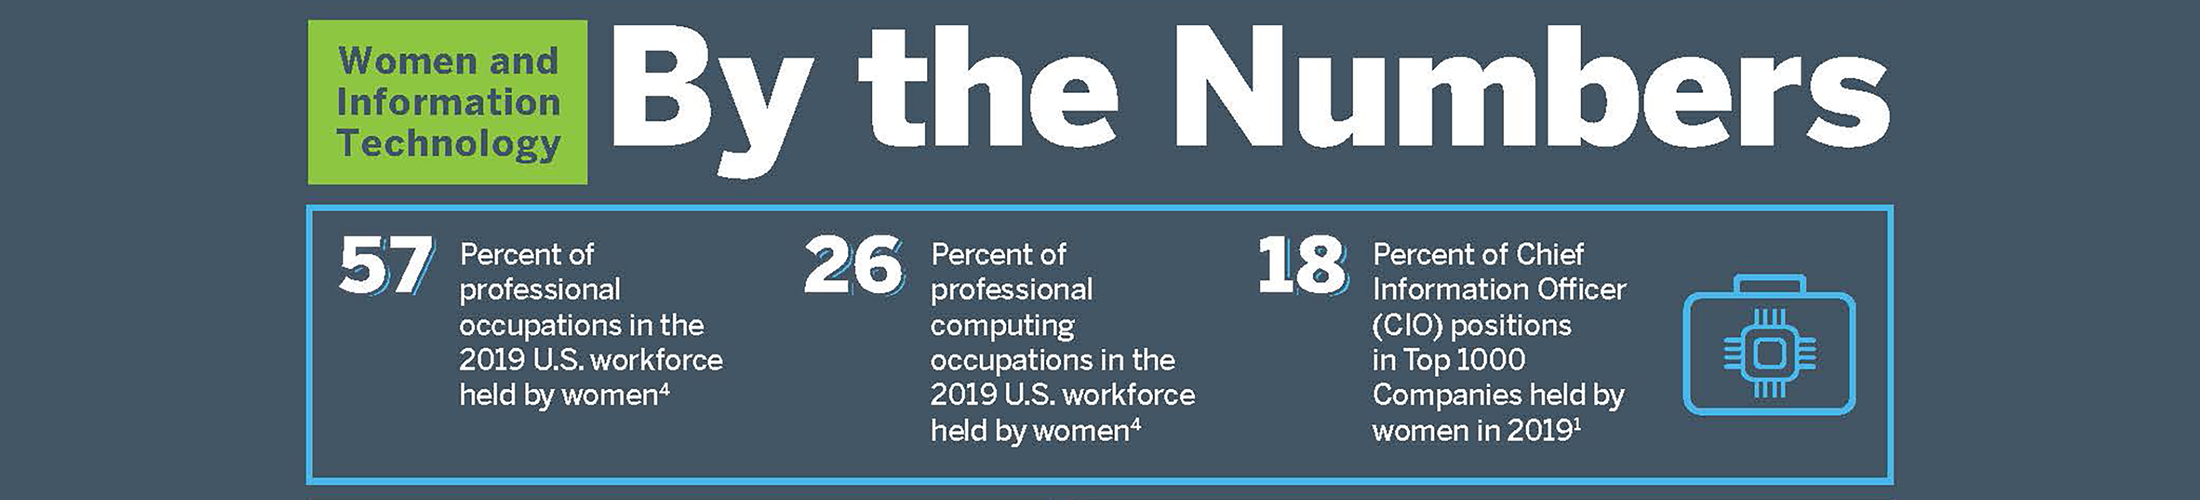 By the Numbers - Women in Technology - 57% of professional occupations in the 2019 U.S. workforce held by women. 26% of professional computing occupations held by women. 18% of CIO positions in top 1000 companies held by women.